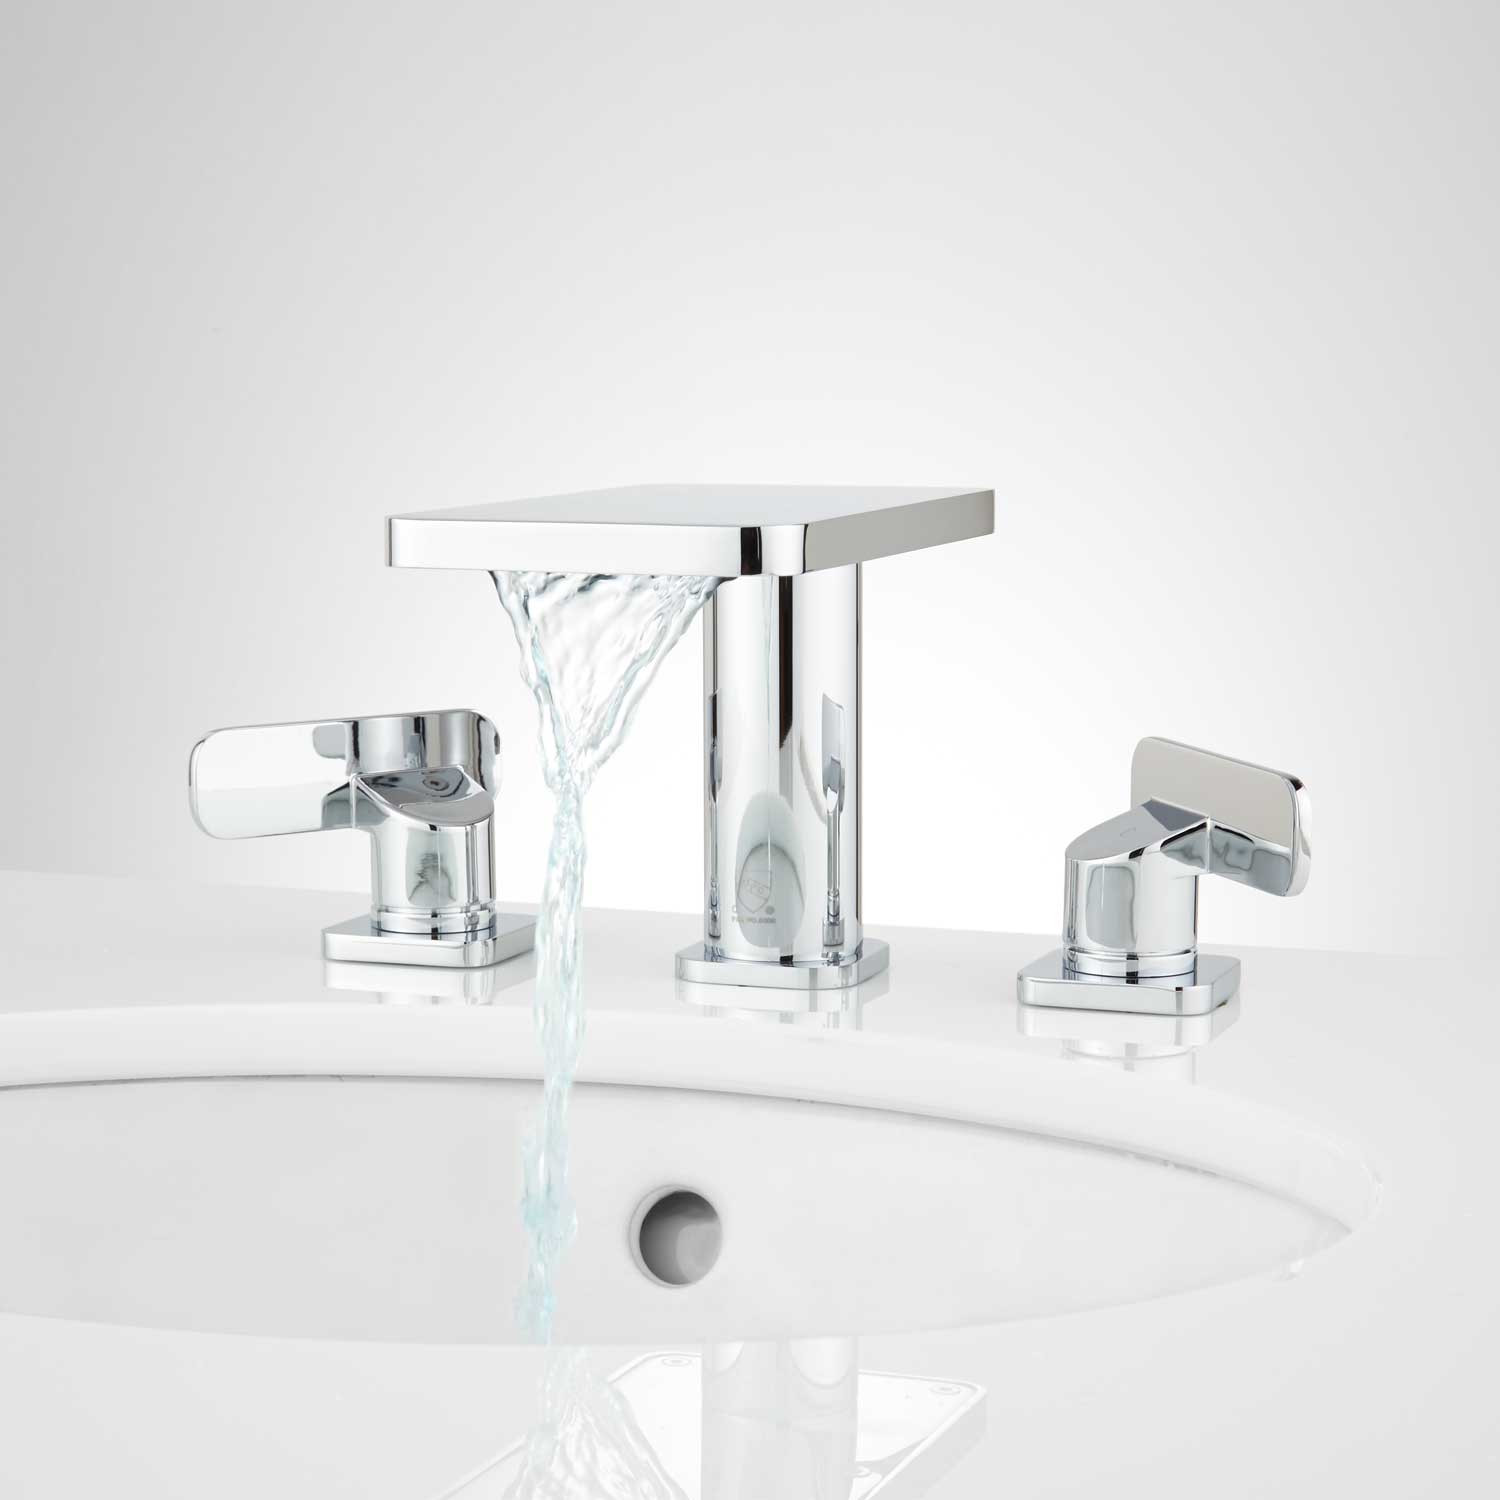 Best ideas about Waterfall Bathroom Faucet . Save or Pin Morata Widespread Waterfall Bathroom Faucet Bathroom Now.